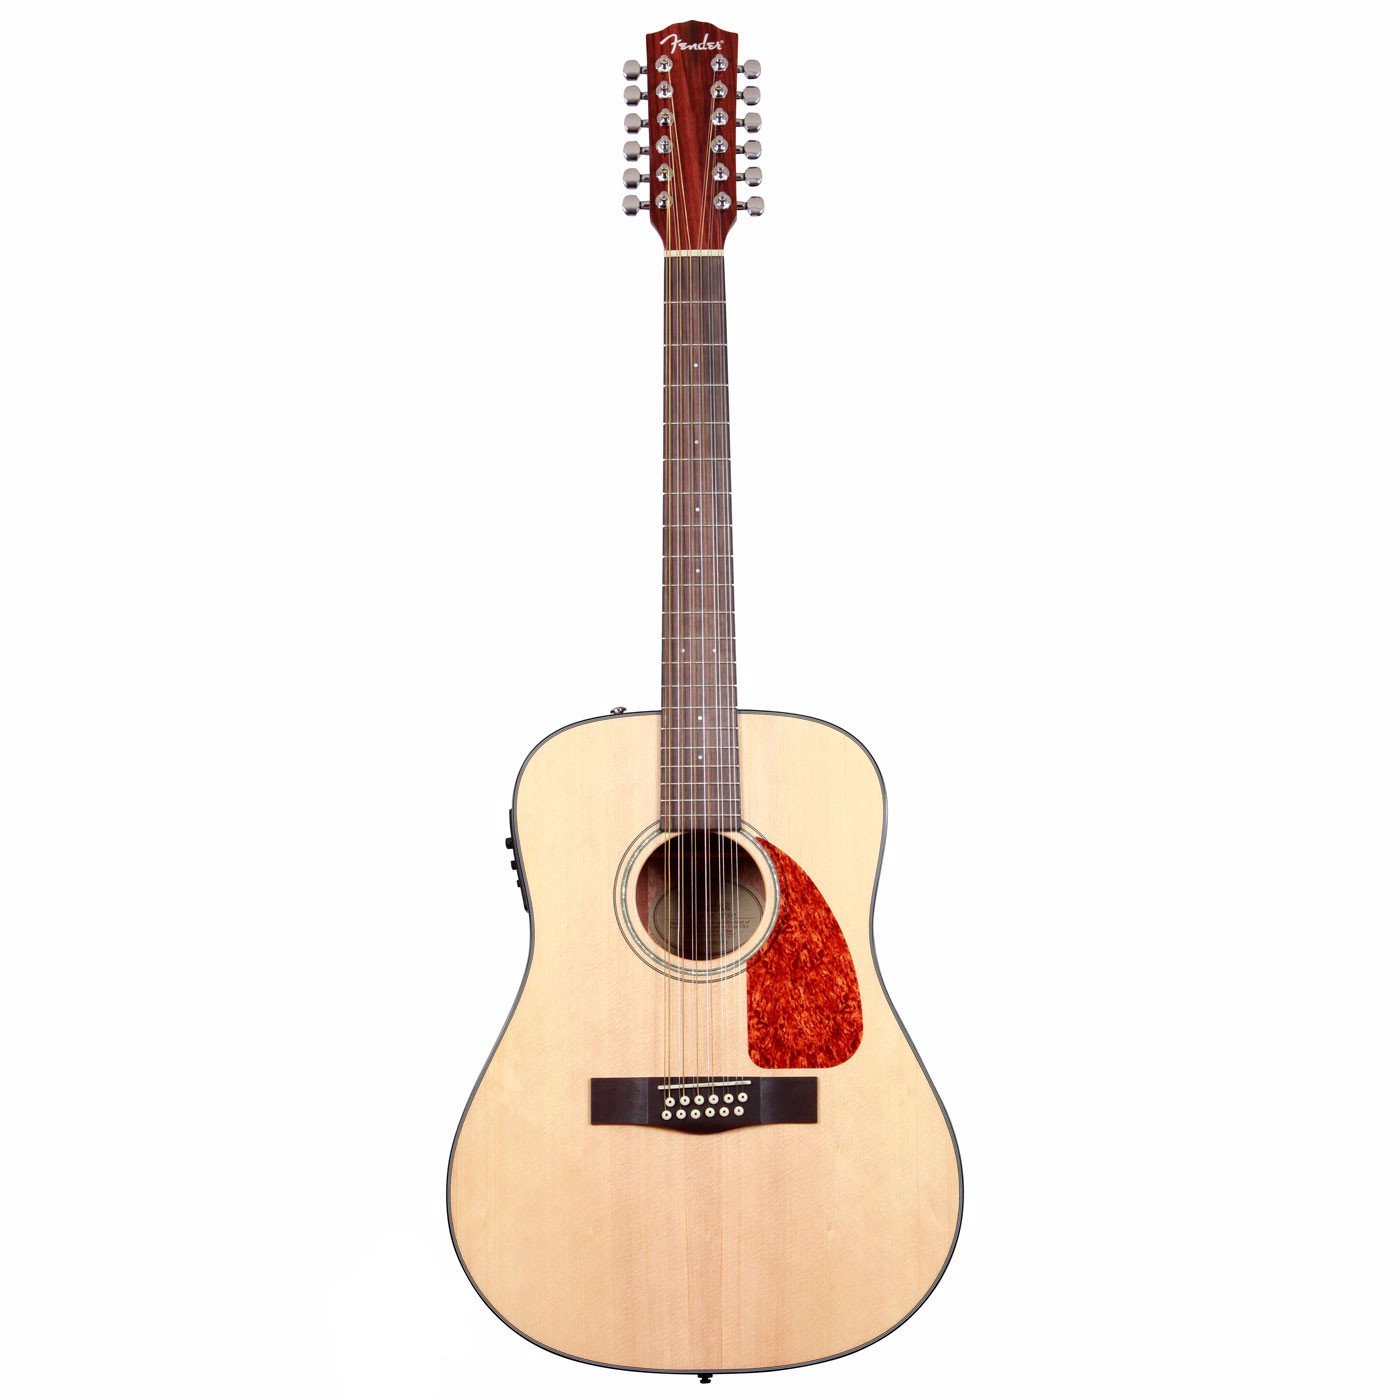 Fender CD-160 SE 12-String - Natural - Vintage Guitar Boutique - 2